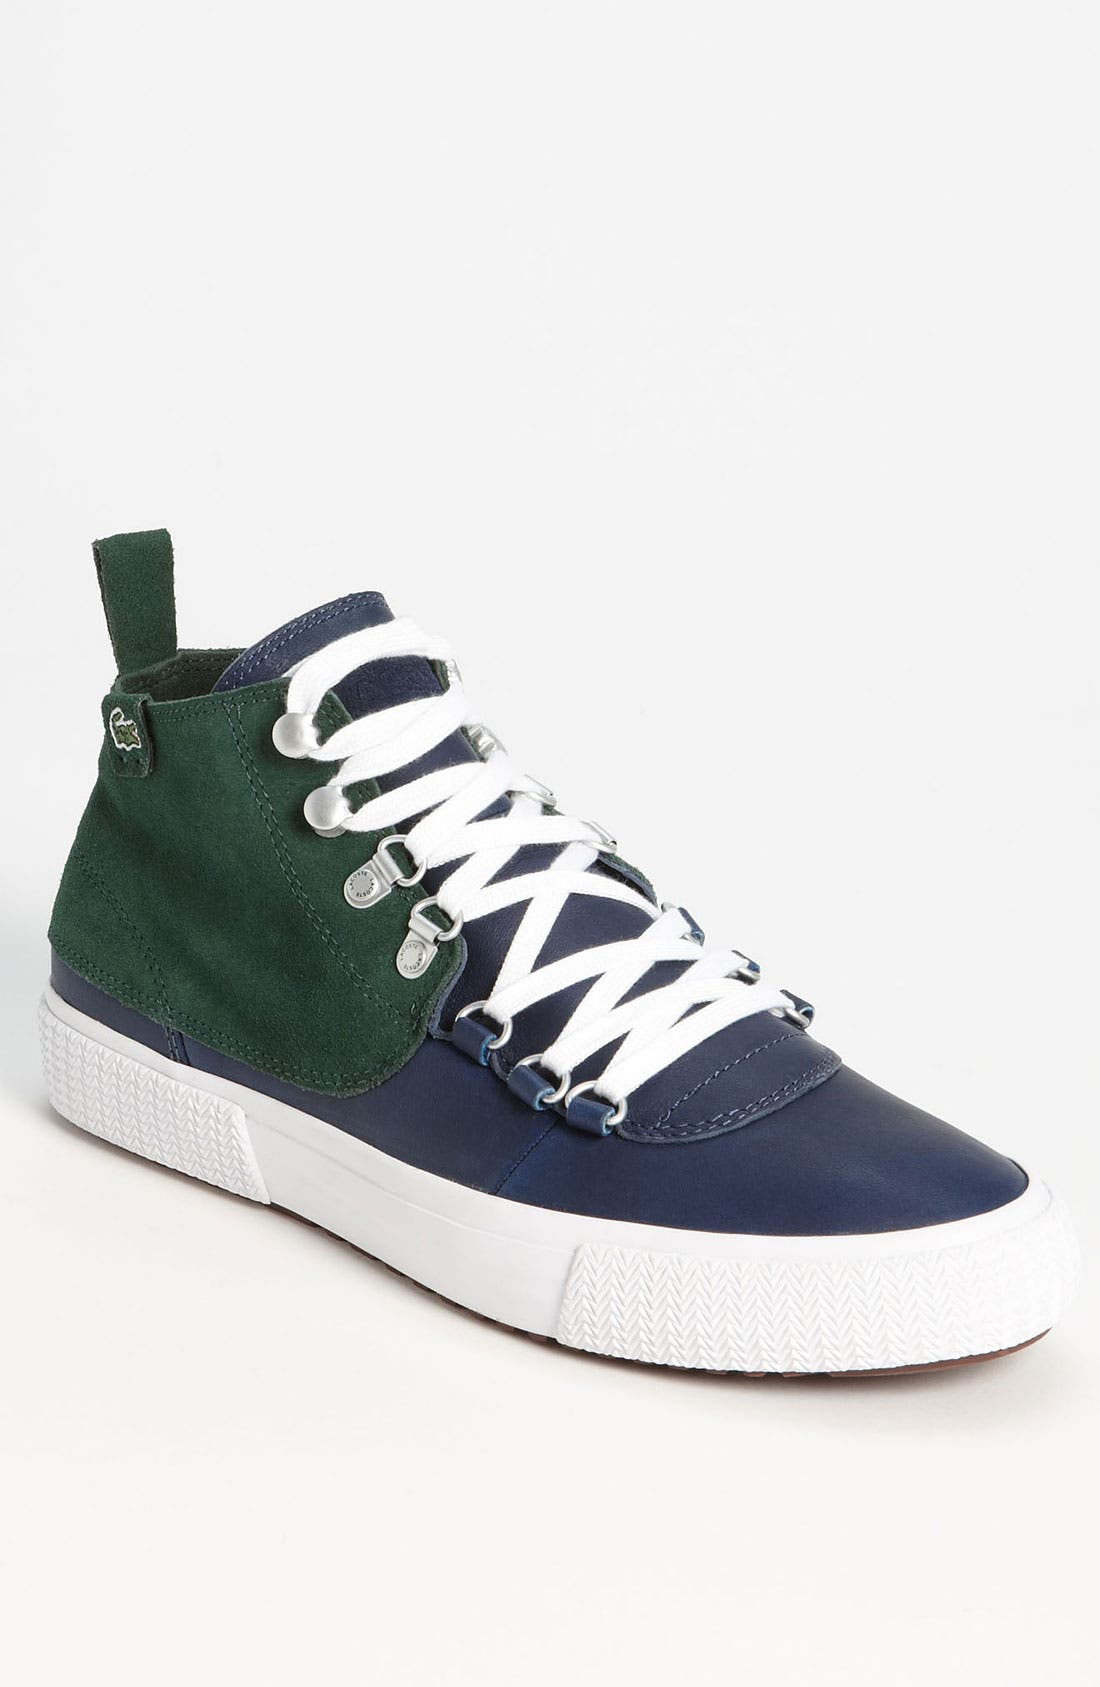 Main Image - Lacoste 'Bruton LMS' Sneaker